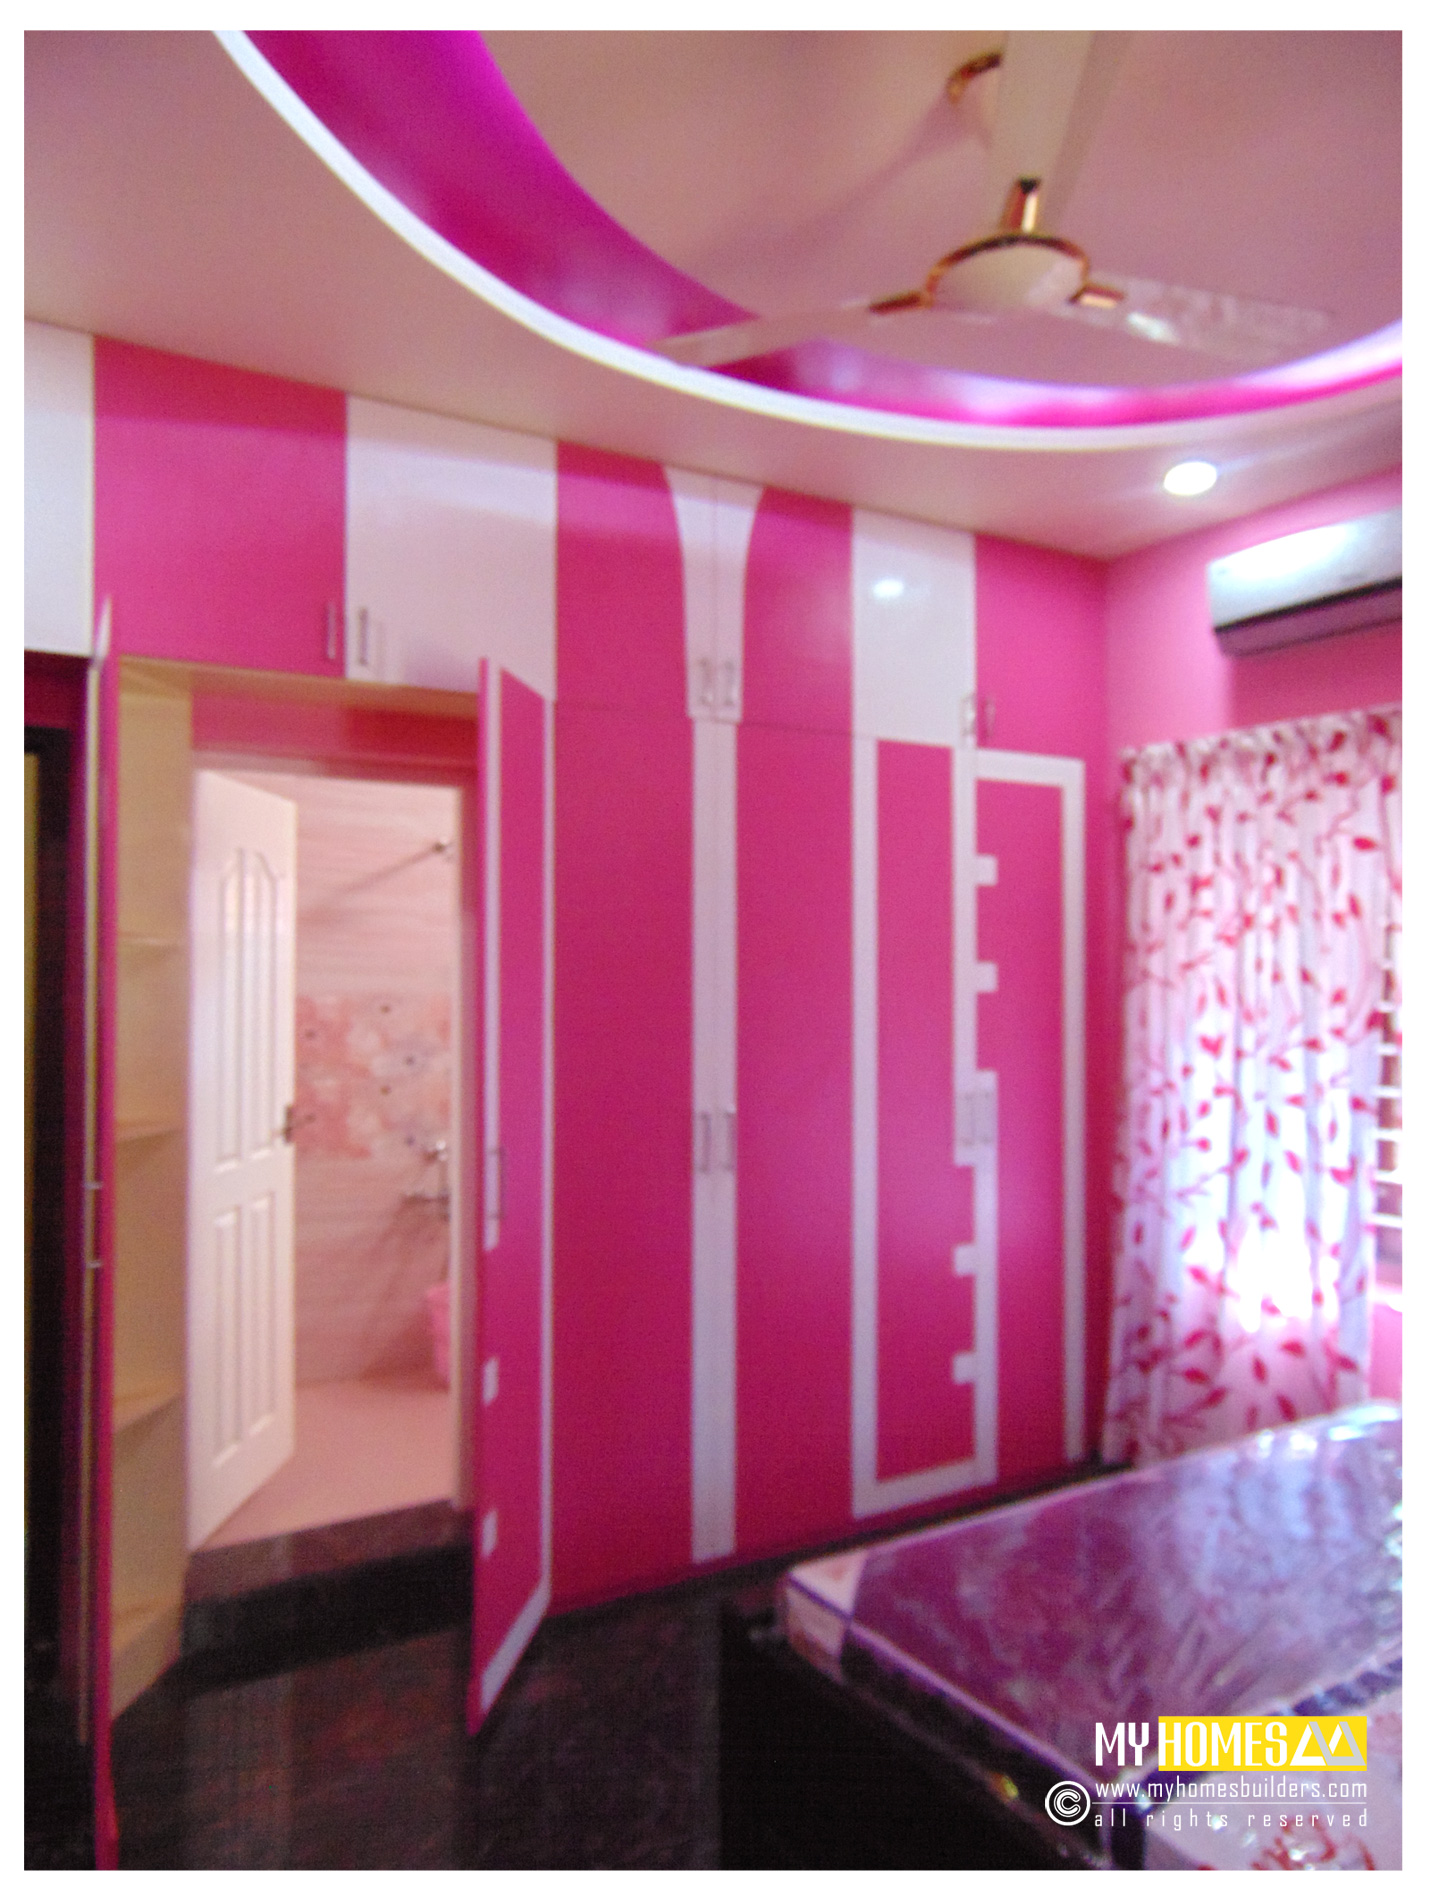 Kerala Best Home Interior Designs